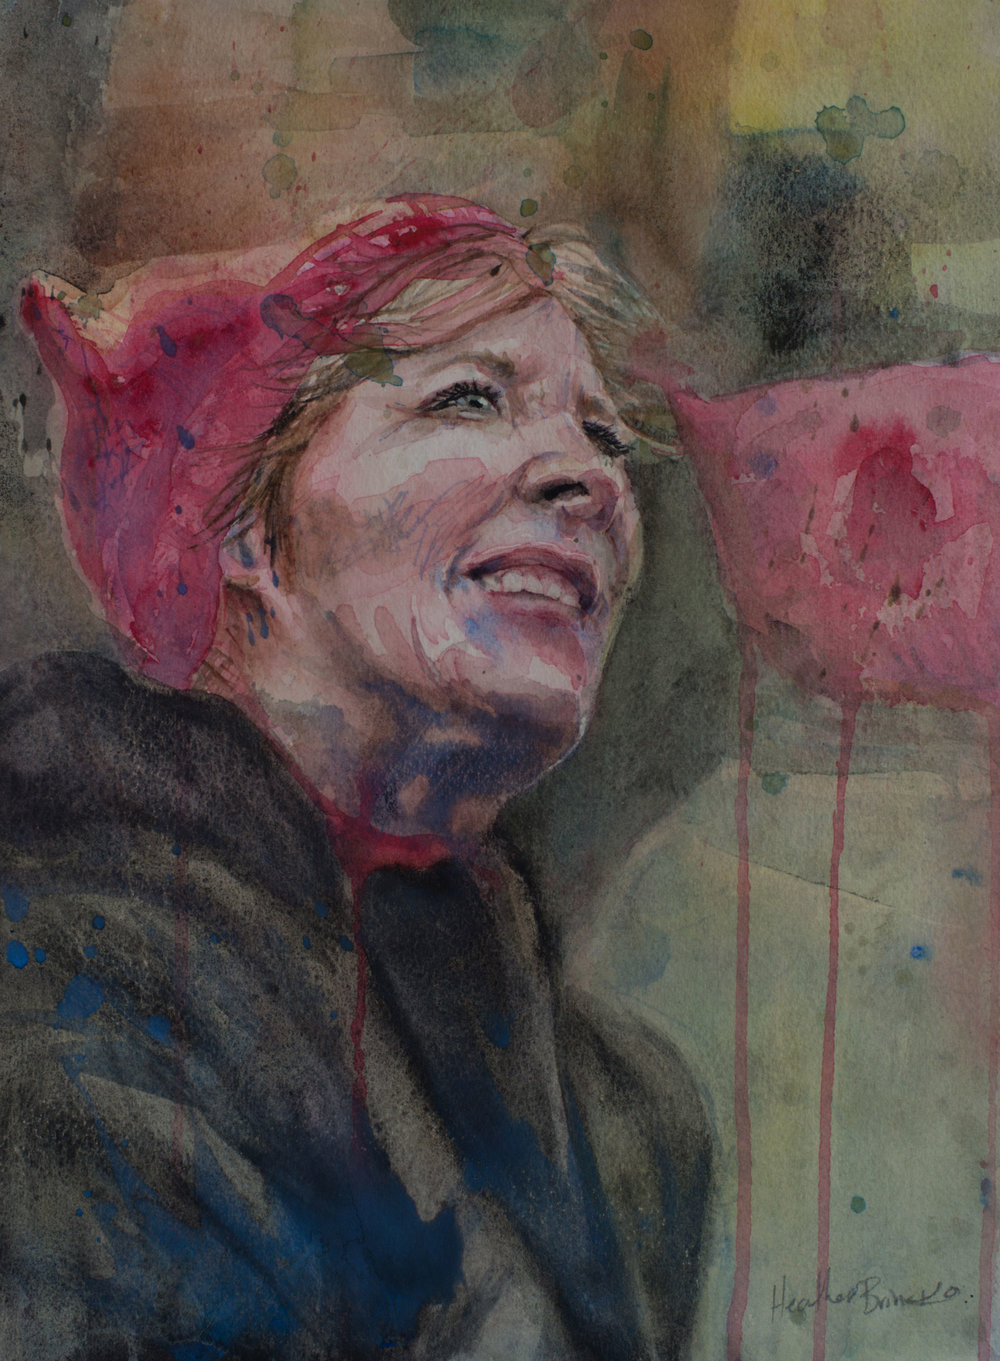 heatherbrincko_watercolor_portraits-kim.jpg